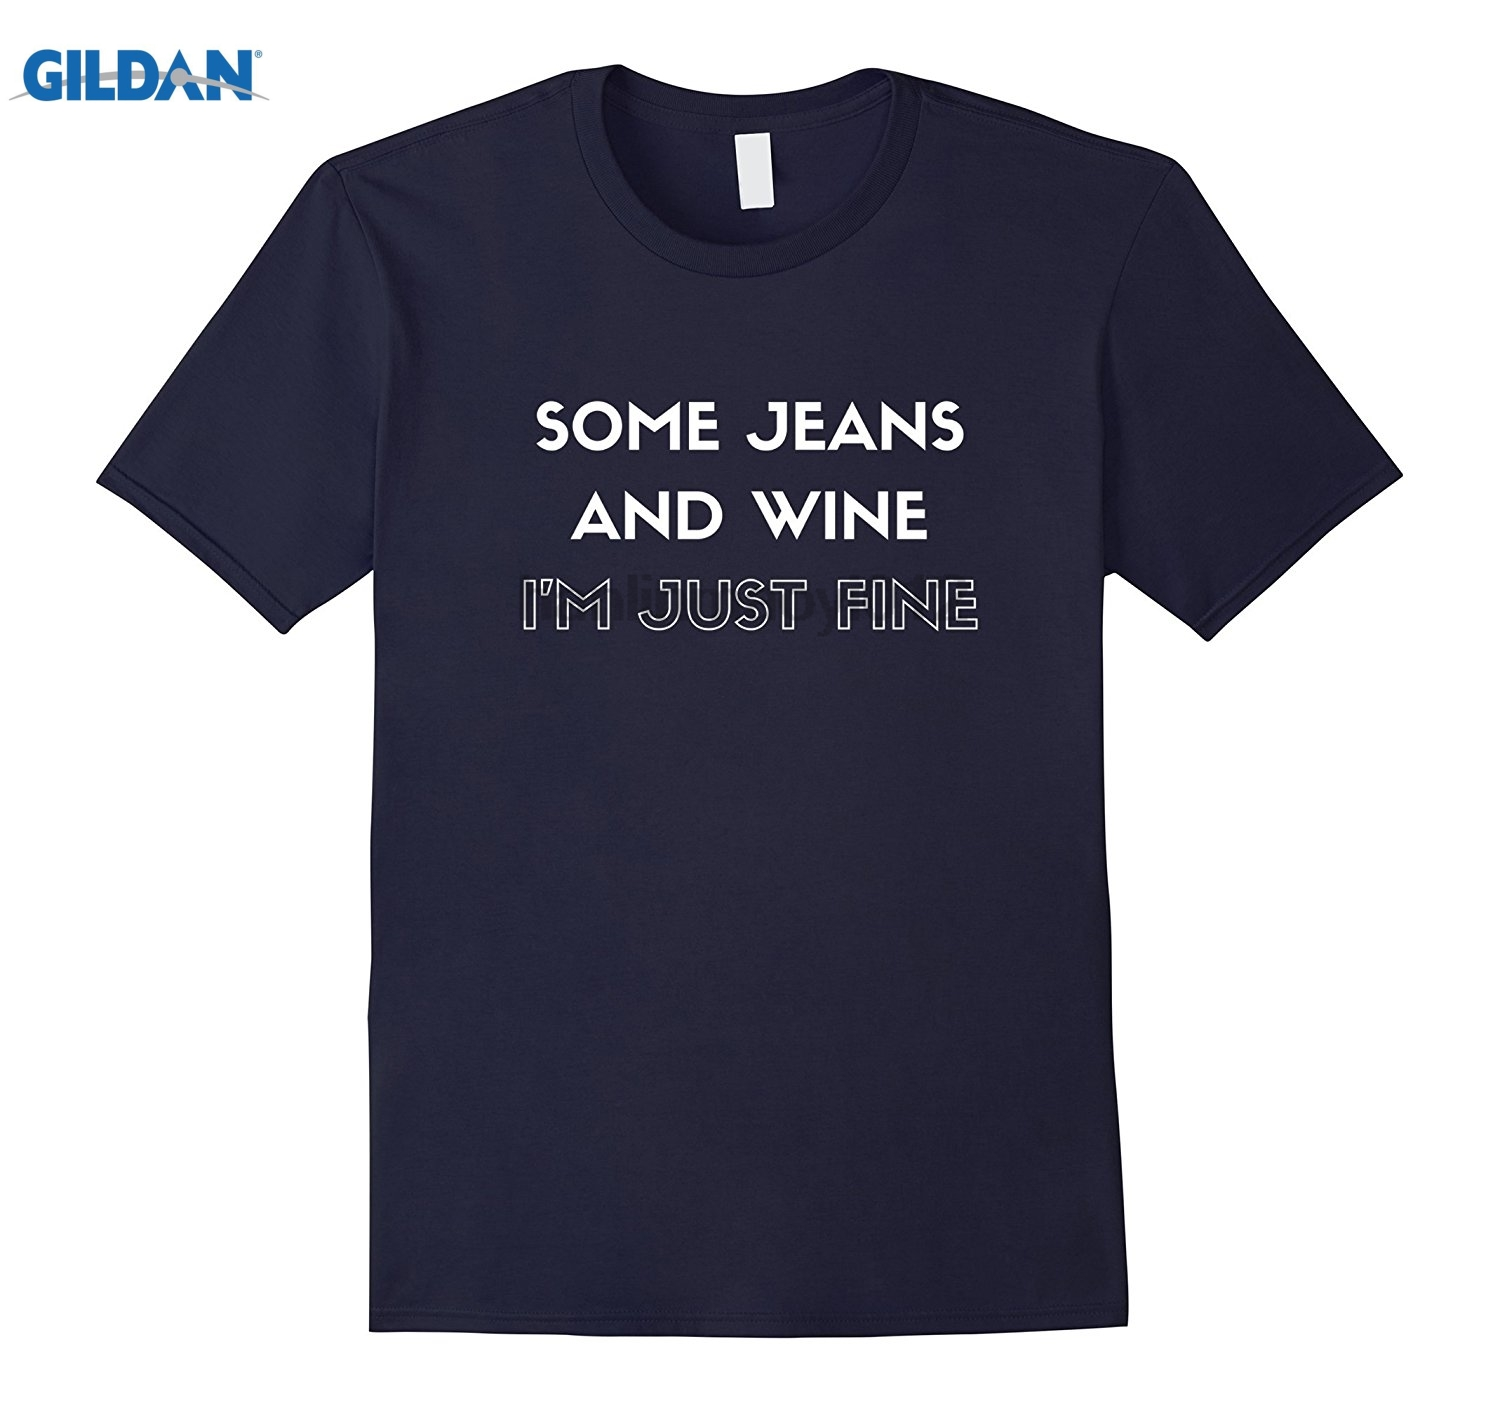 GILDAN Some Jeans and Wine Im Just Fine chill drinking t-shirt glasses Womens T-shirt